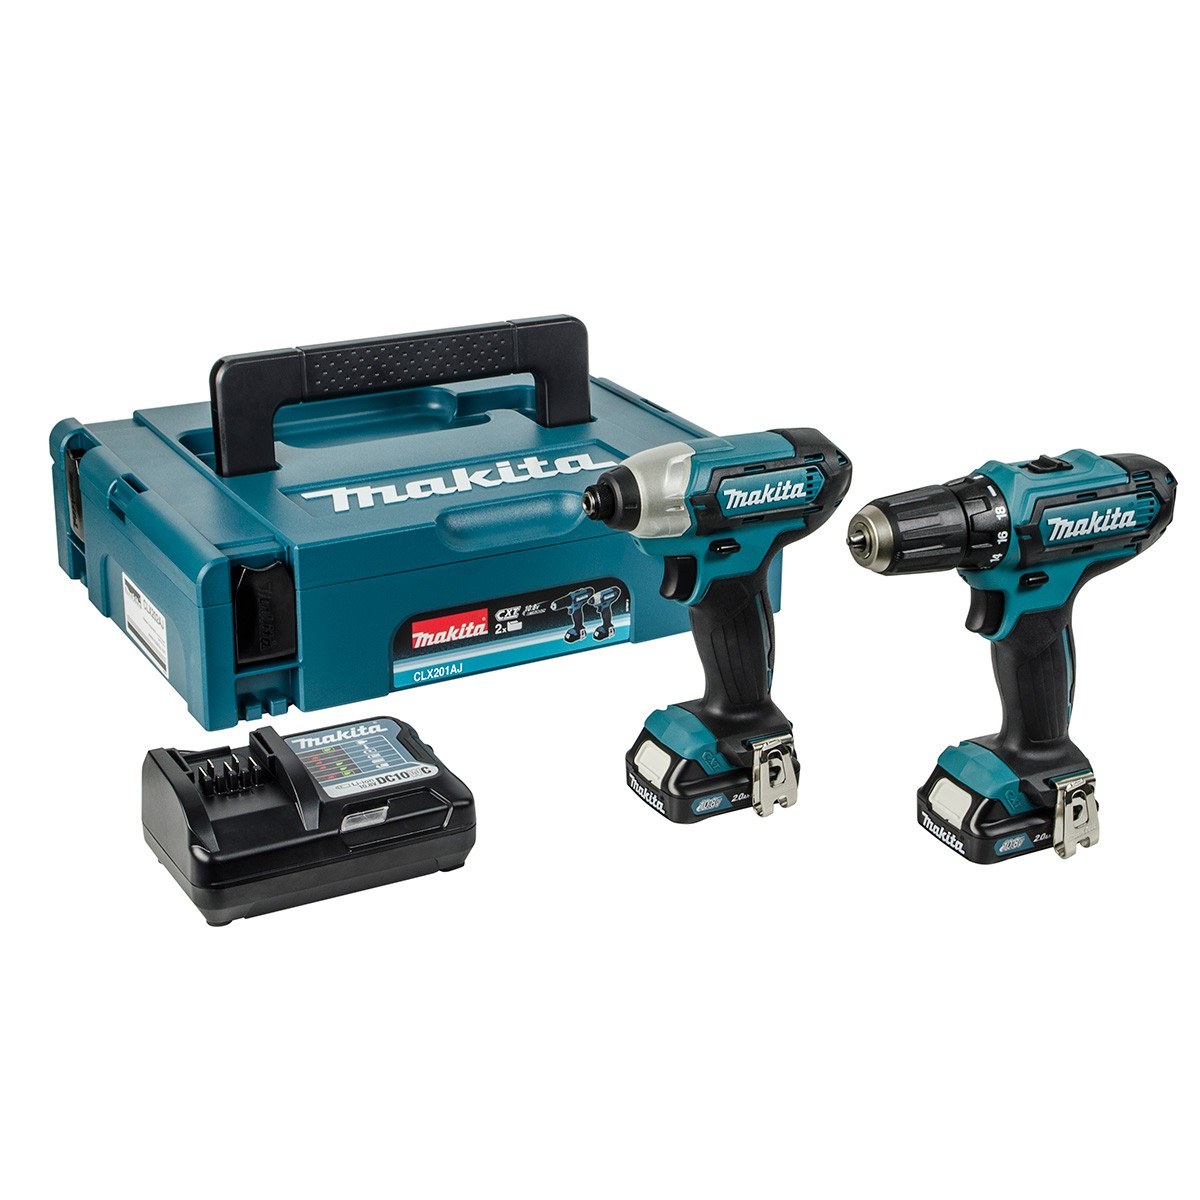 makita drill set clx201aj cxt slide twin pack drill. Black Bedroom Furniture Sets. Home Design Ideas